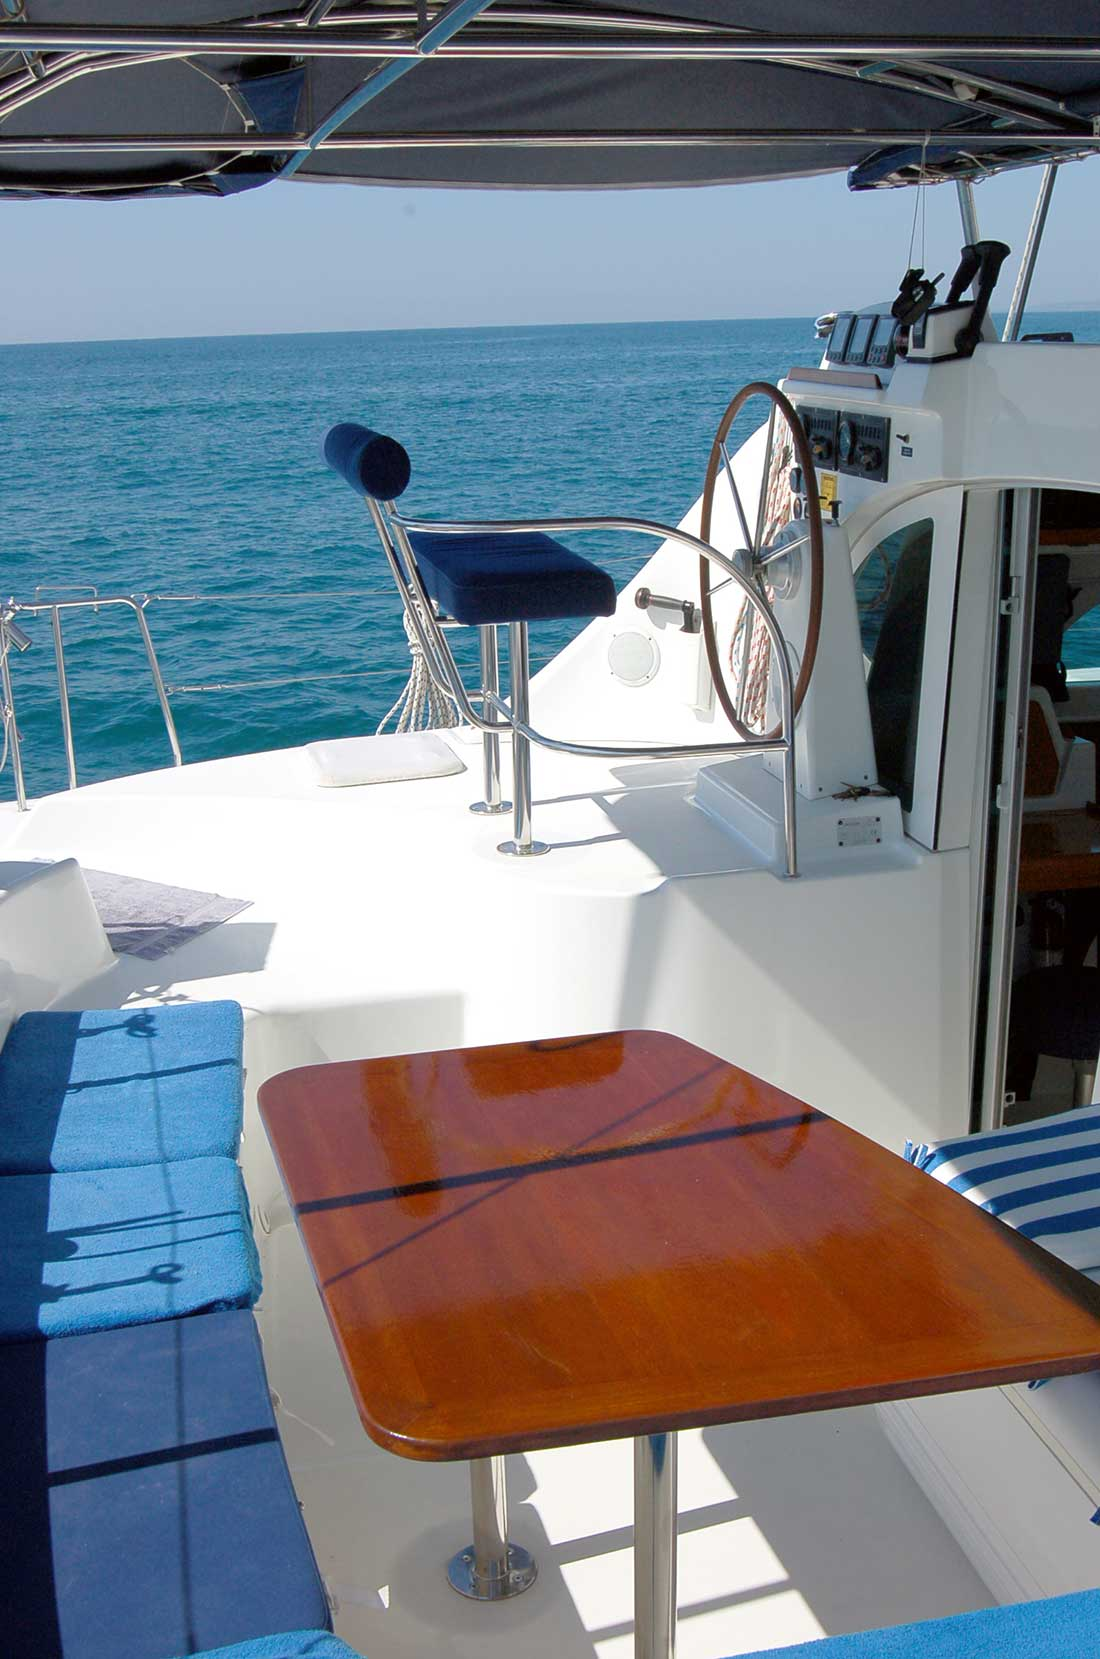 38 FT Lagoon Catamaran - Up to 20 People – (max. 8 to Marieta Islands)-benched-seating-table2